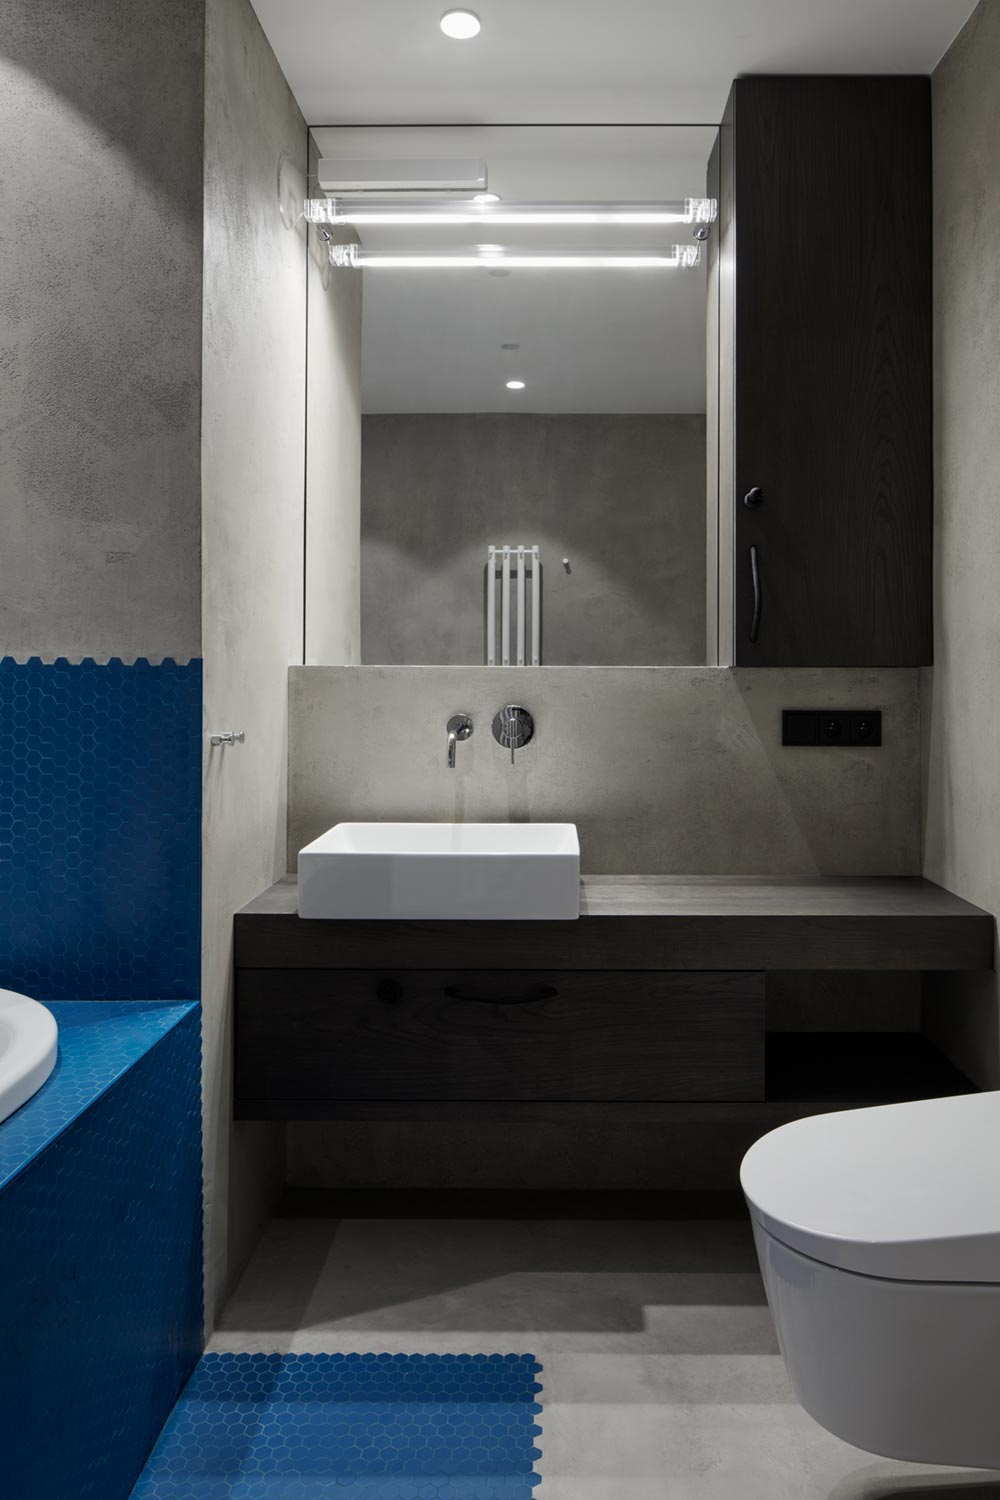 apartment design blue tile bathroom - Ovenecka Apartment